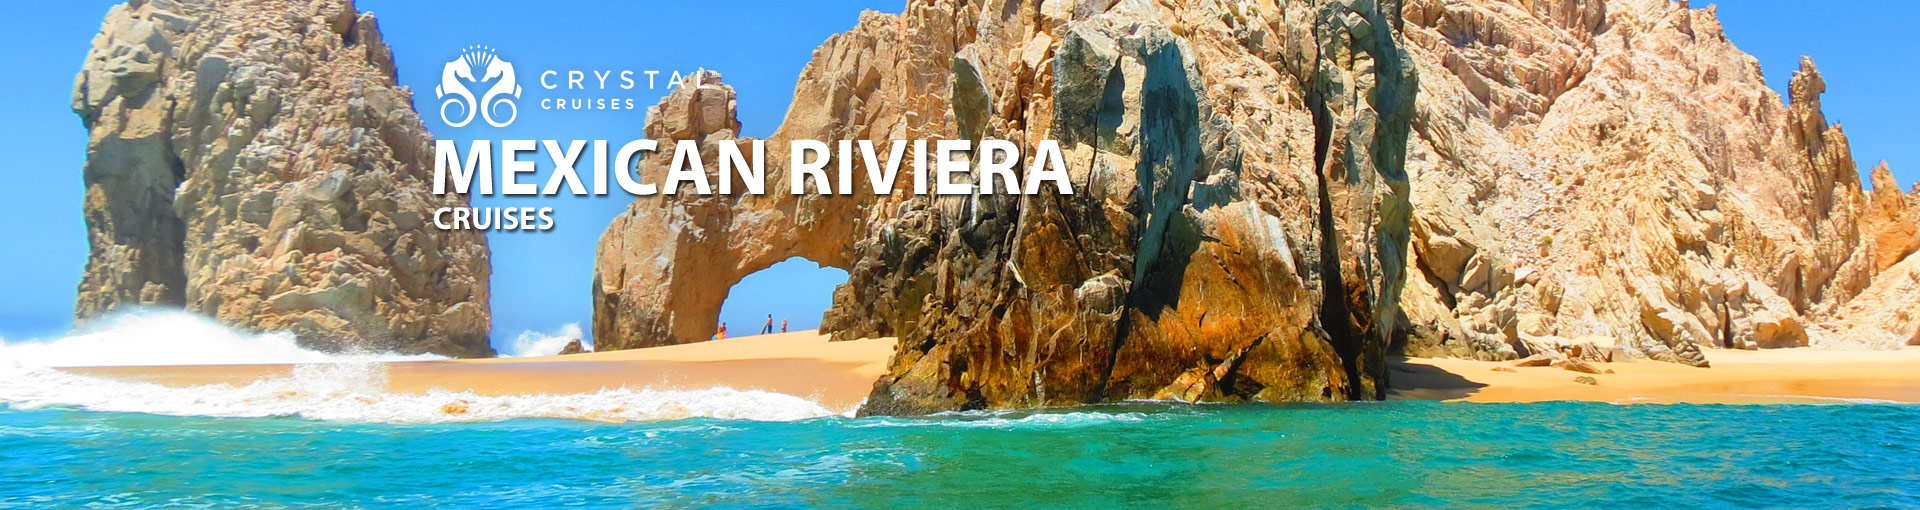 Crystal Cruises Mexican Riviera